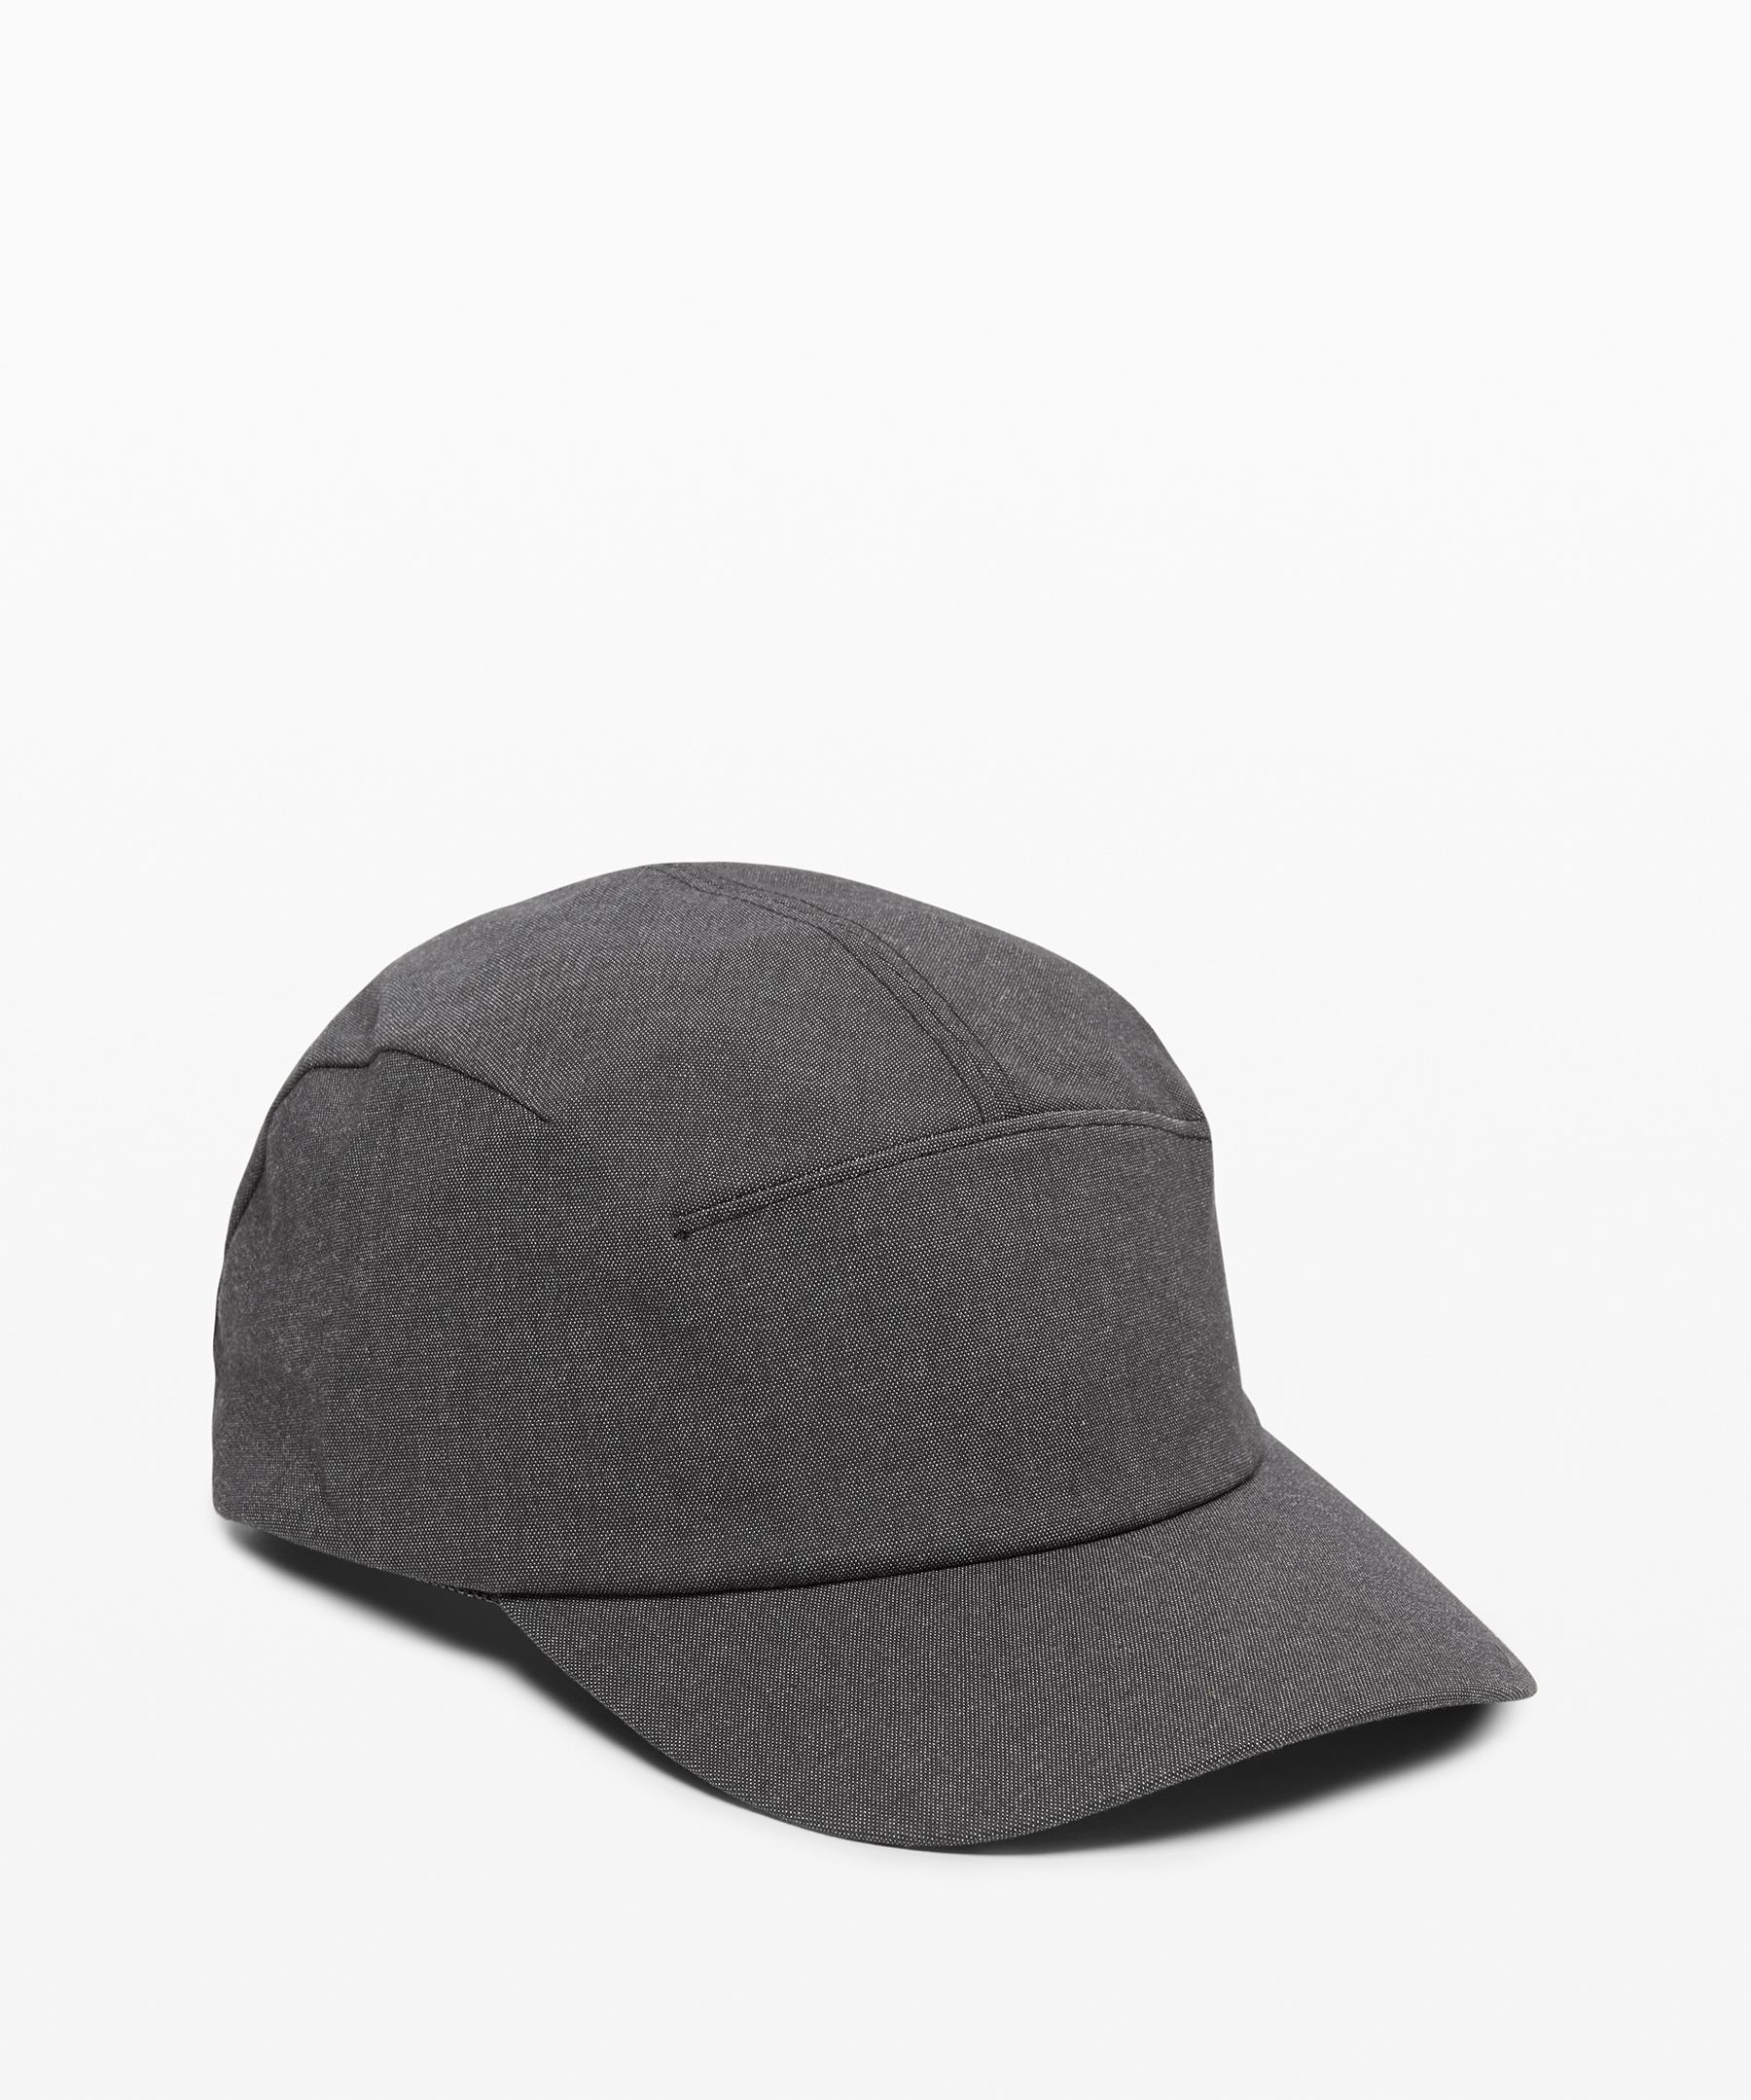 Move through hot and sunny  days in comfort in this  single-panel hat that boasts  technical details and  low-profile bonded seams for  high performance with a sleek,  minimal look.